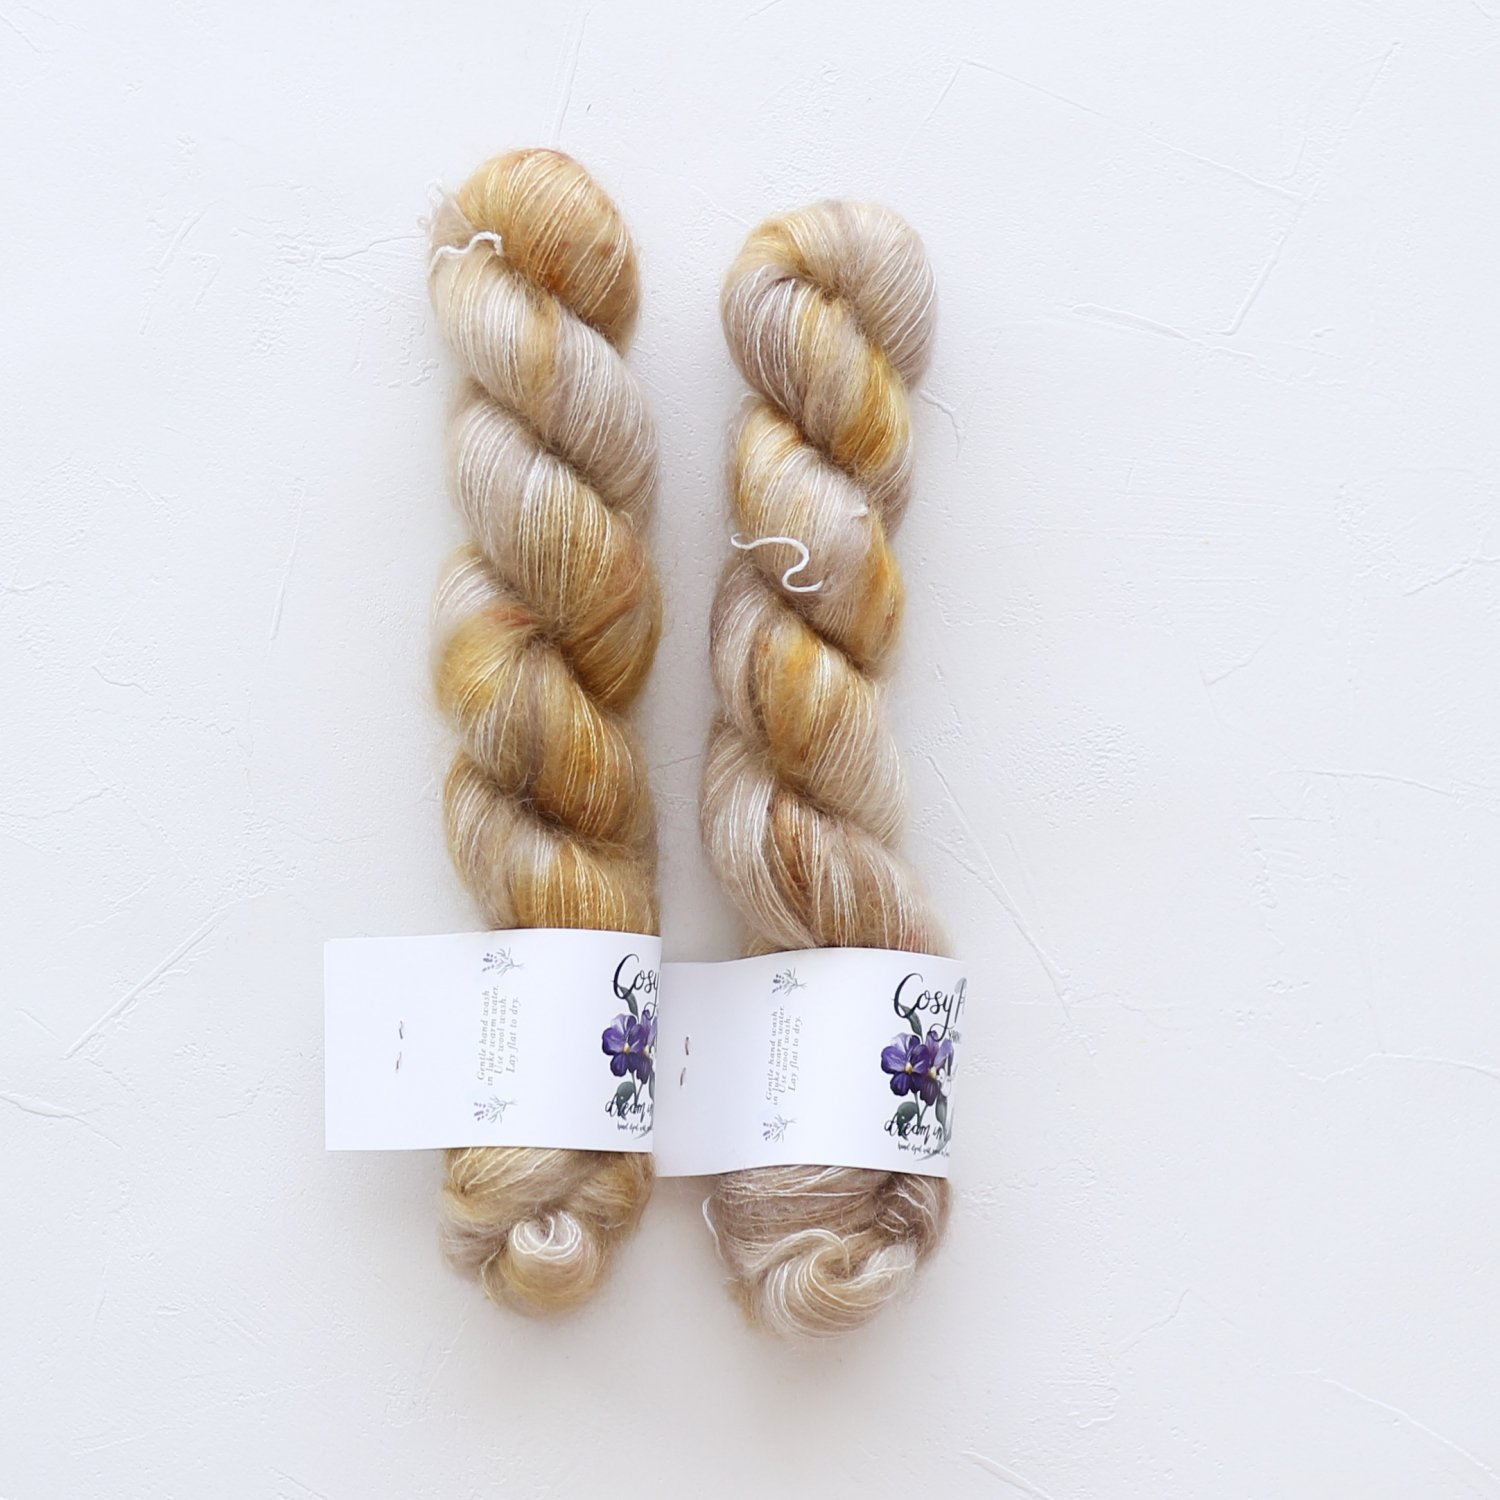 【Cosy Posy Yarn】<br>FLOOF<br>Citrine